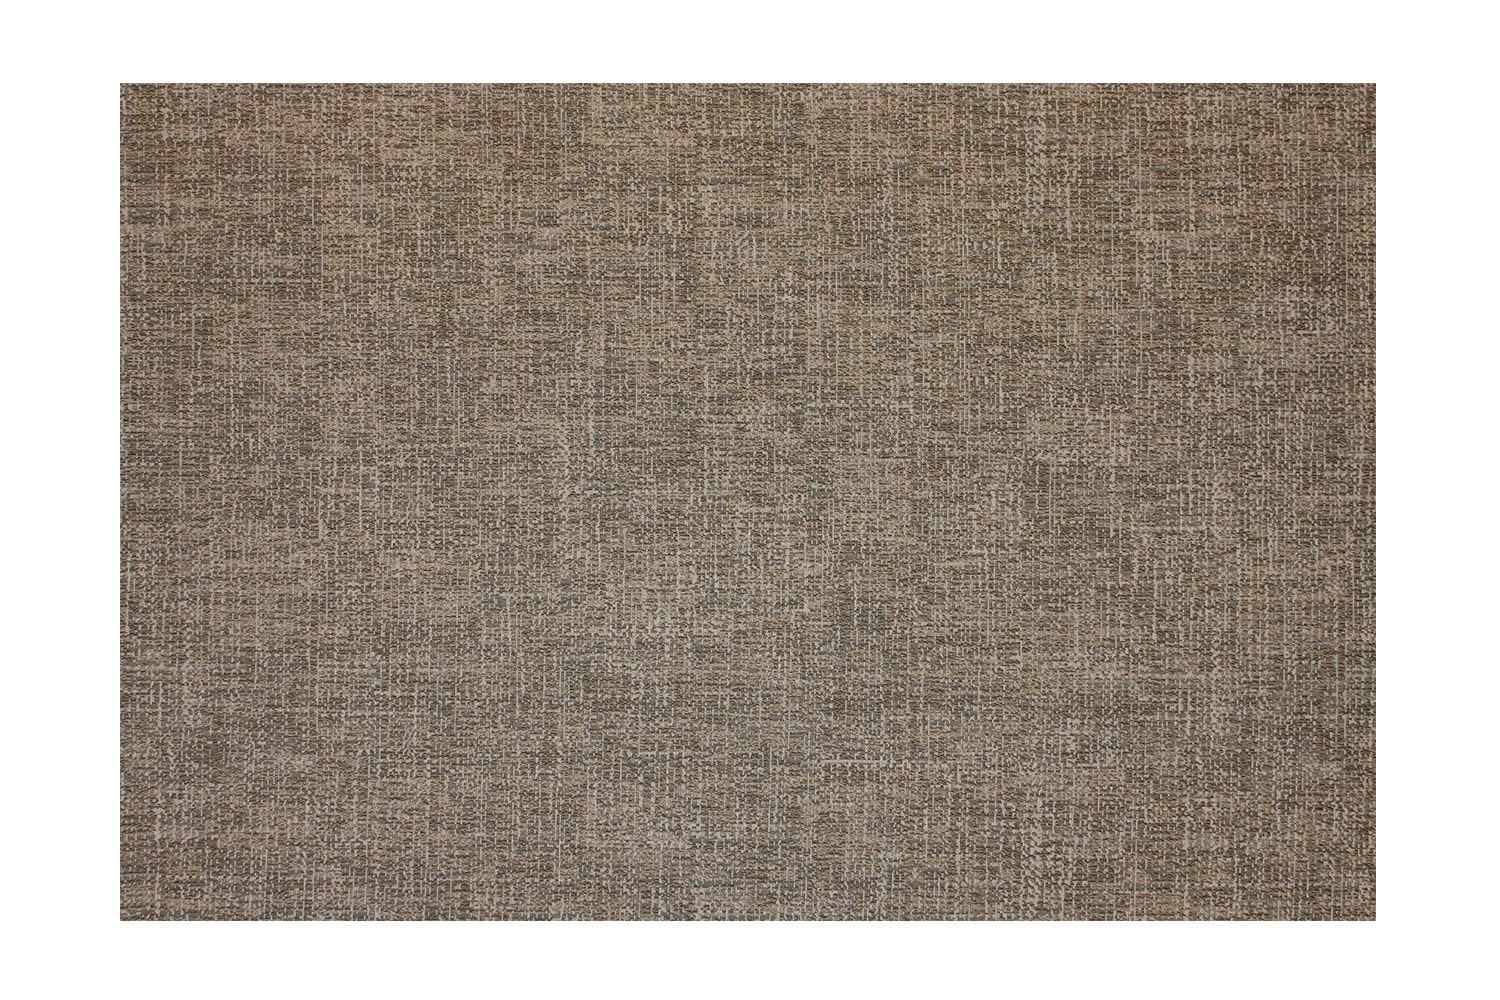 Waikawa Natural Outdoor Rugs by Limon